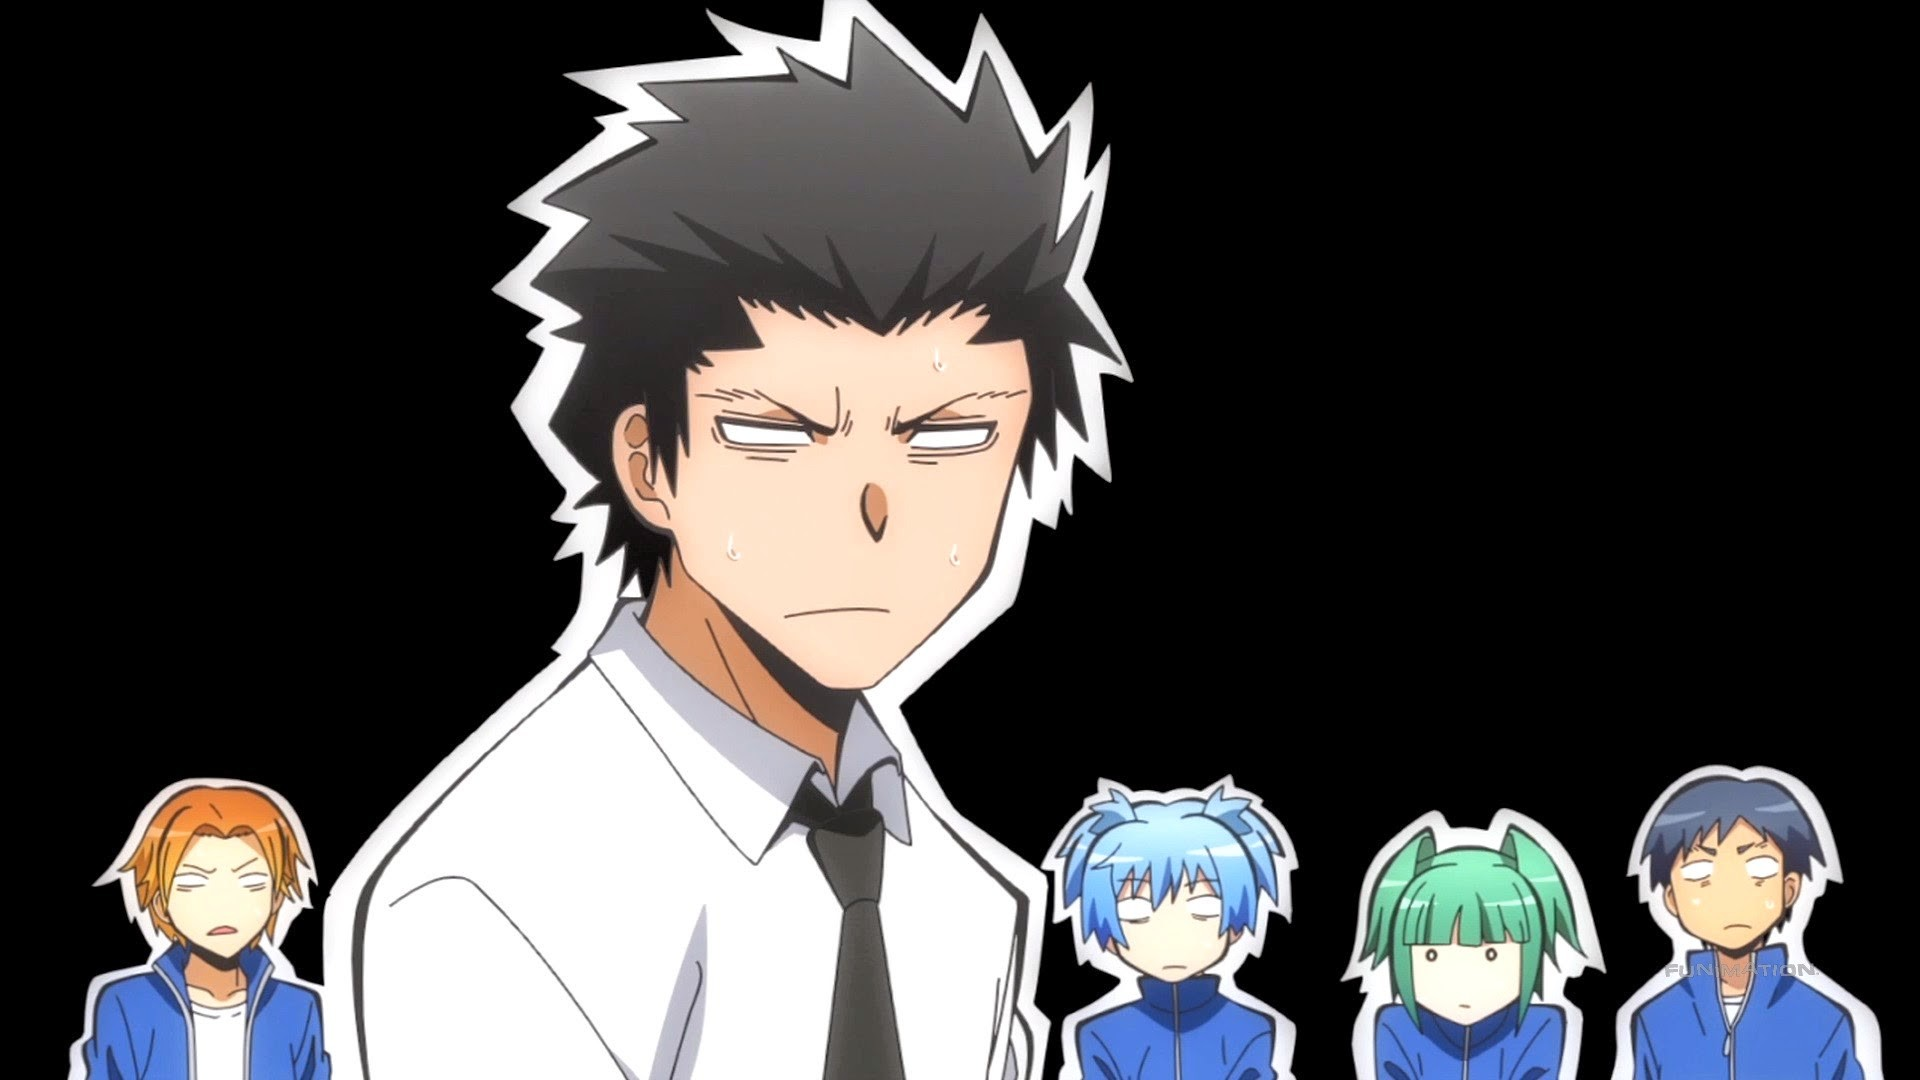 1920x1080 Karasuma-sensei and E-Class - Assassination Classroom